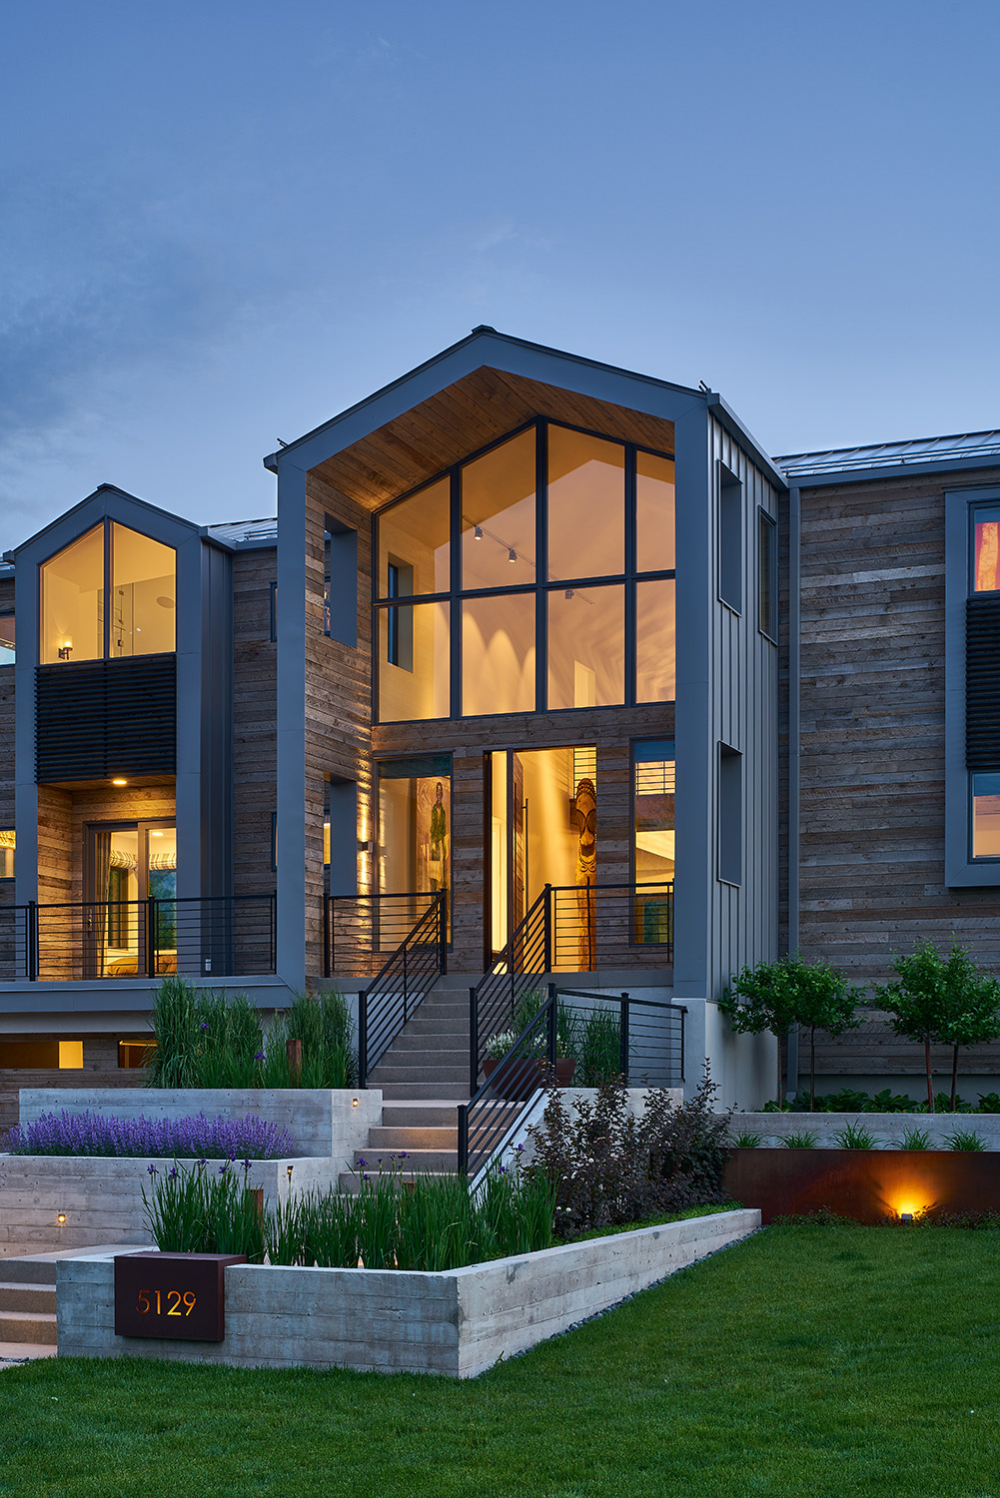 Beachfront Luxury Modern Home Exterior At Night: A Unique Lakeside Setting Informs The Design Of This Ground-up, Single-family Home. Respect